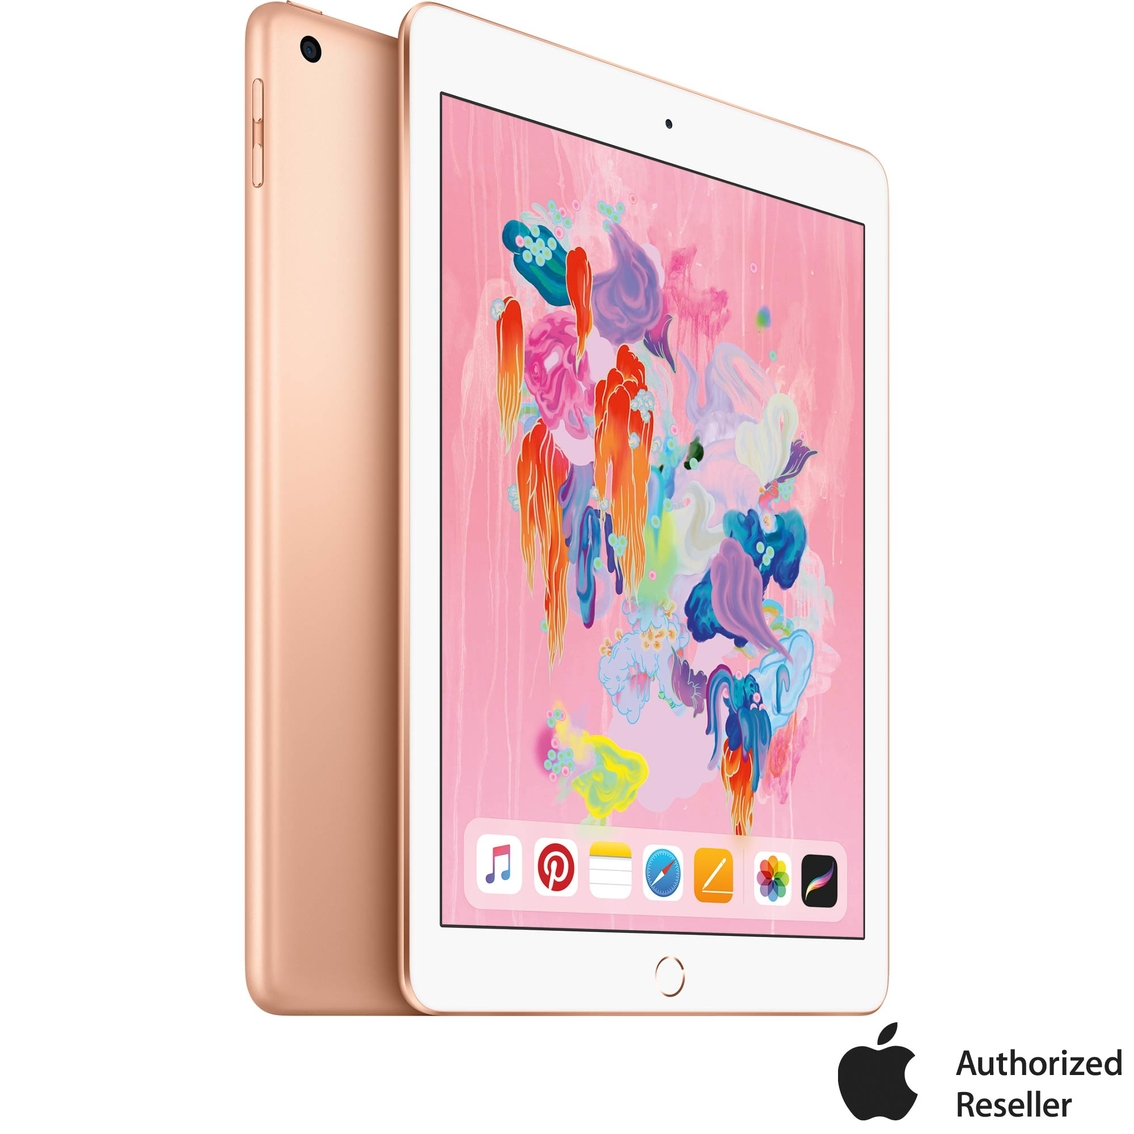 Apple Ipad 9 7 In 32gb With Wifi Ipads Back To School Shop Shop The Exchange